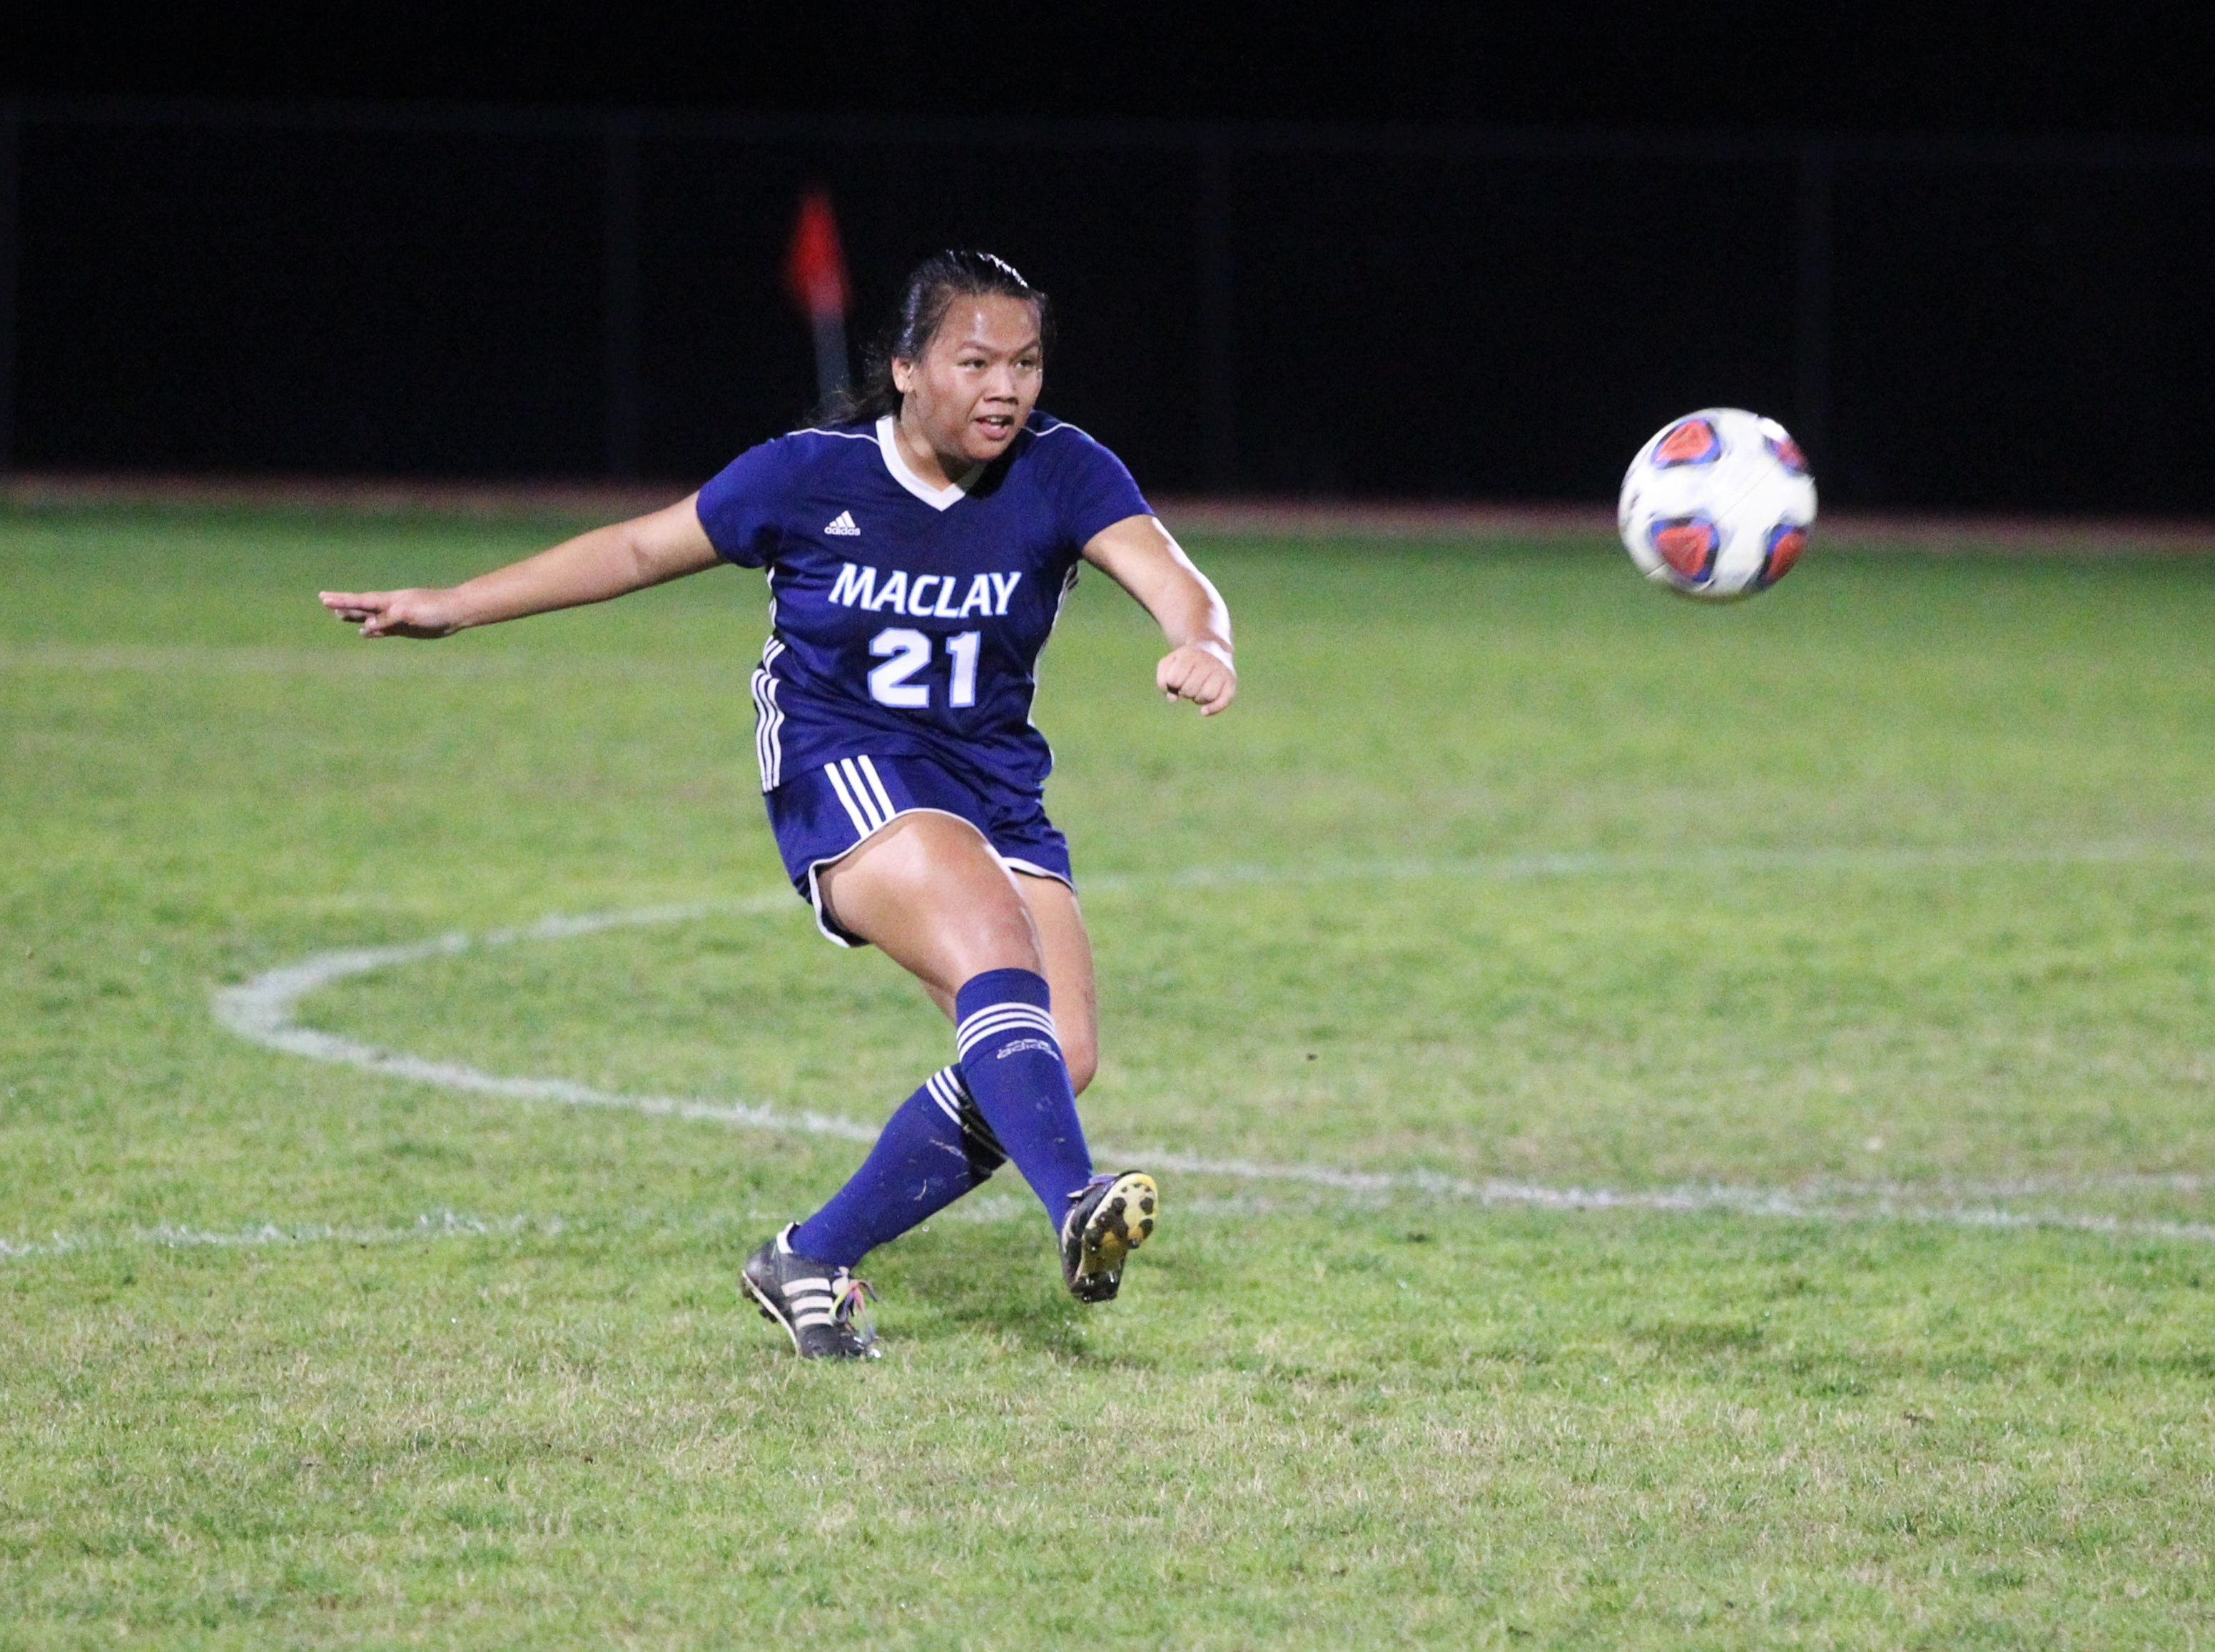 Maclay's Tayley Cotton takes a free kick as Maclay's girls soccer team beat St. Joseph Academy 4-0 in a Region 1-1A quarterfinal on Jan. 5, 2019.